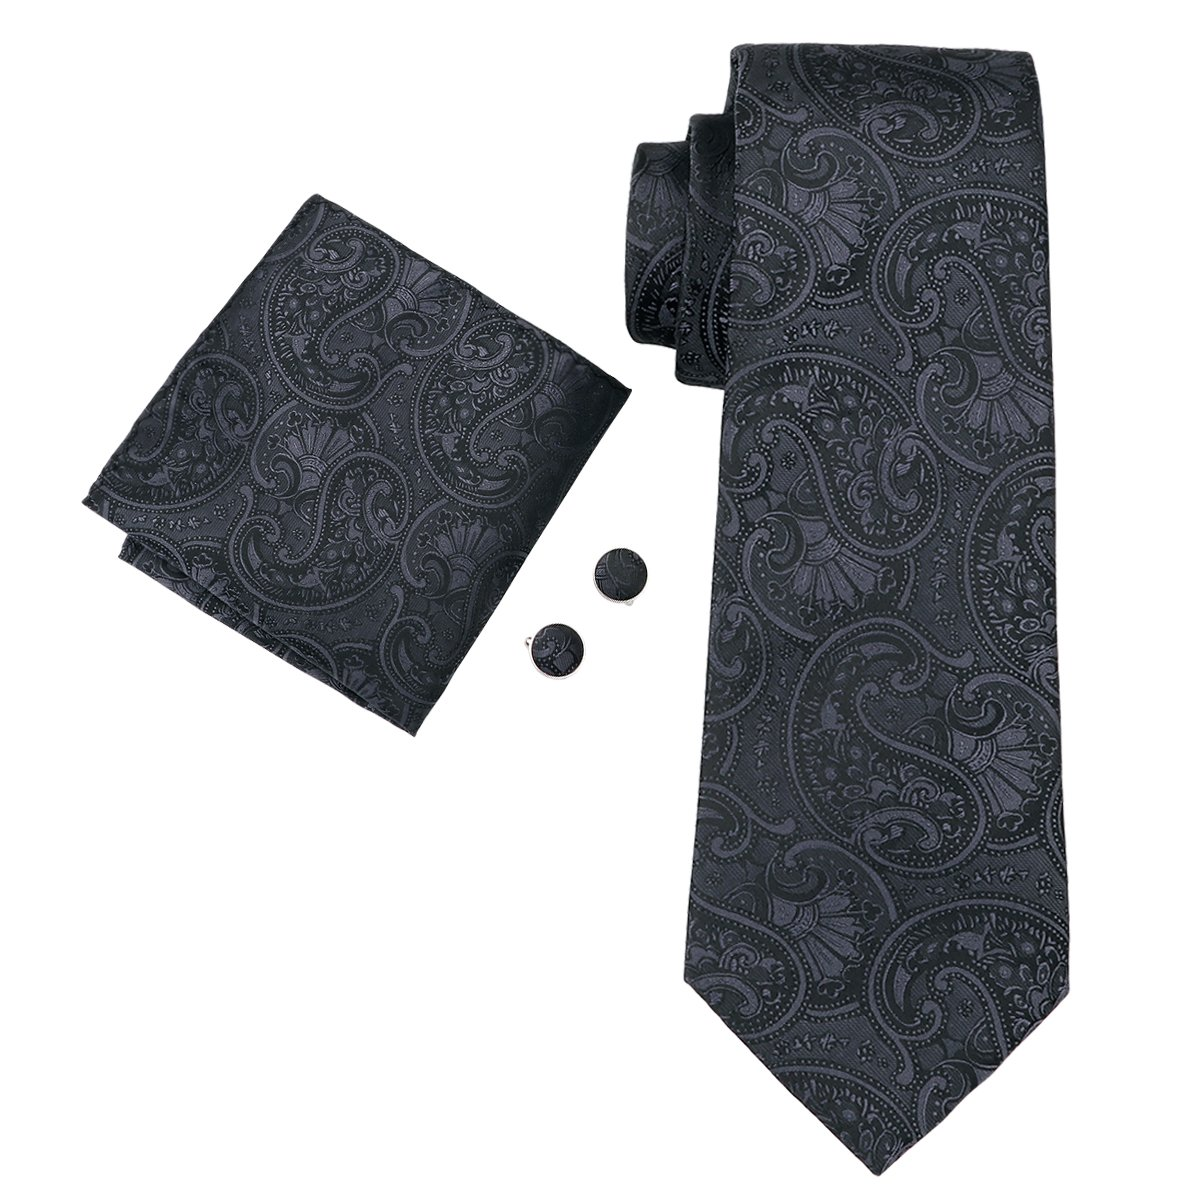 Hi-Tie Mens Stylish Black Paisley Solid Floral Silk Tie Hanky Cufflinks set N-1564